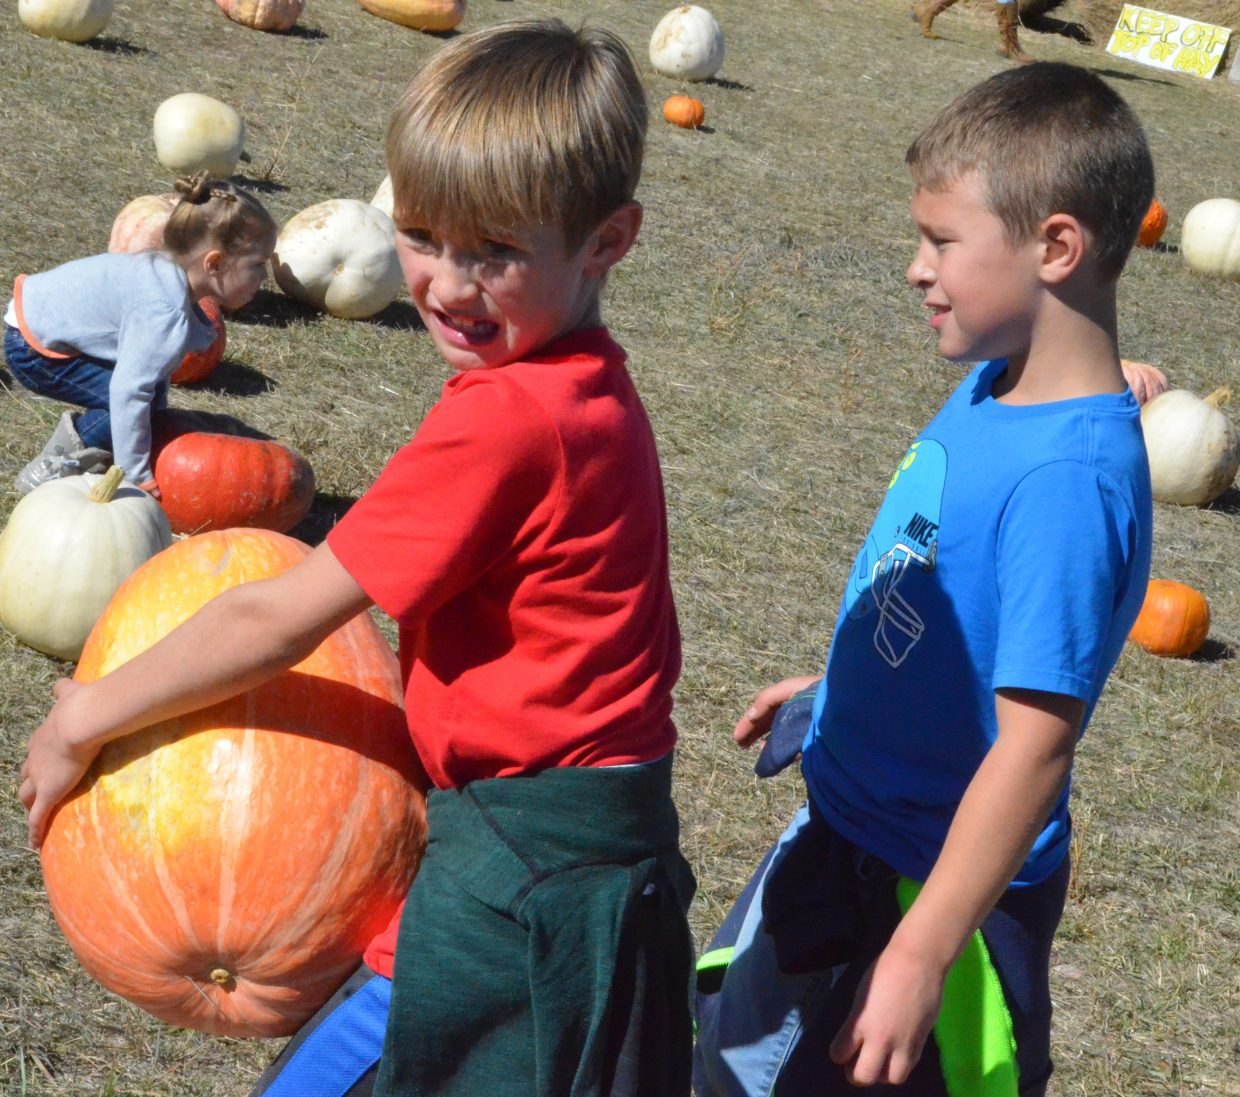 Carson Haskins, 8, hoists a heavy load as he and Noah Weber make their picks at Saturday's pumpkin patch at Wyman Living History Museum.